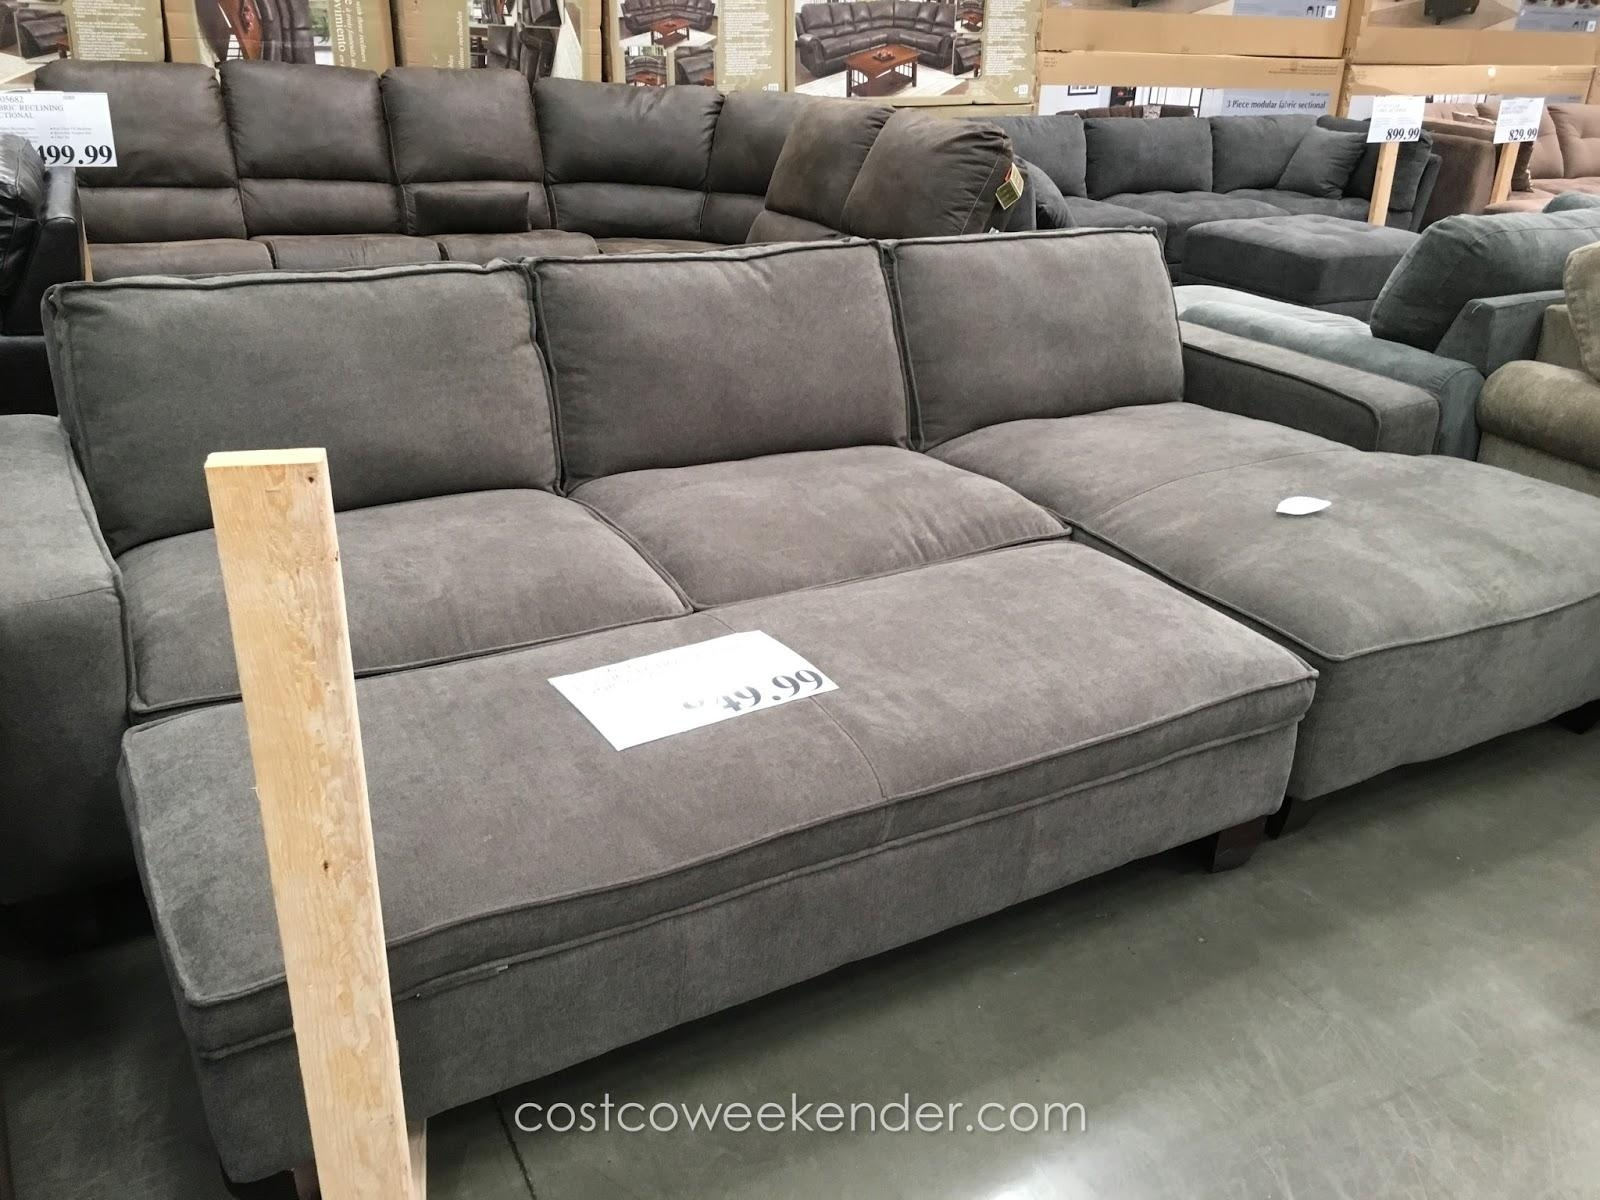 Furniture: Costco Couch | Costco Couches | Sectional Leather Sofas Throughout Costco Leather Sectional Sofas (View 4 of 20)